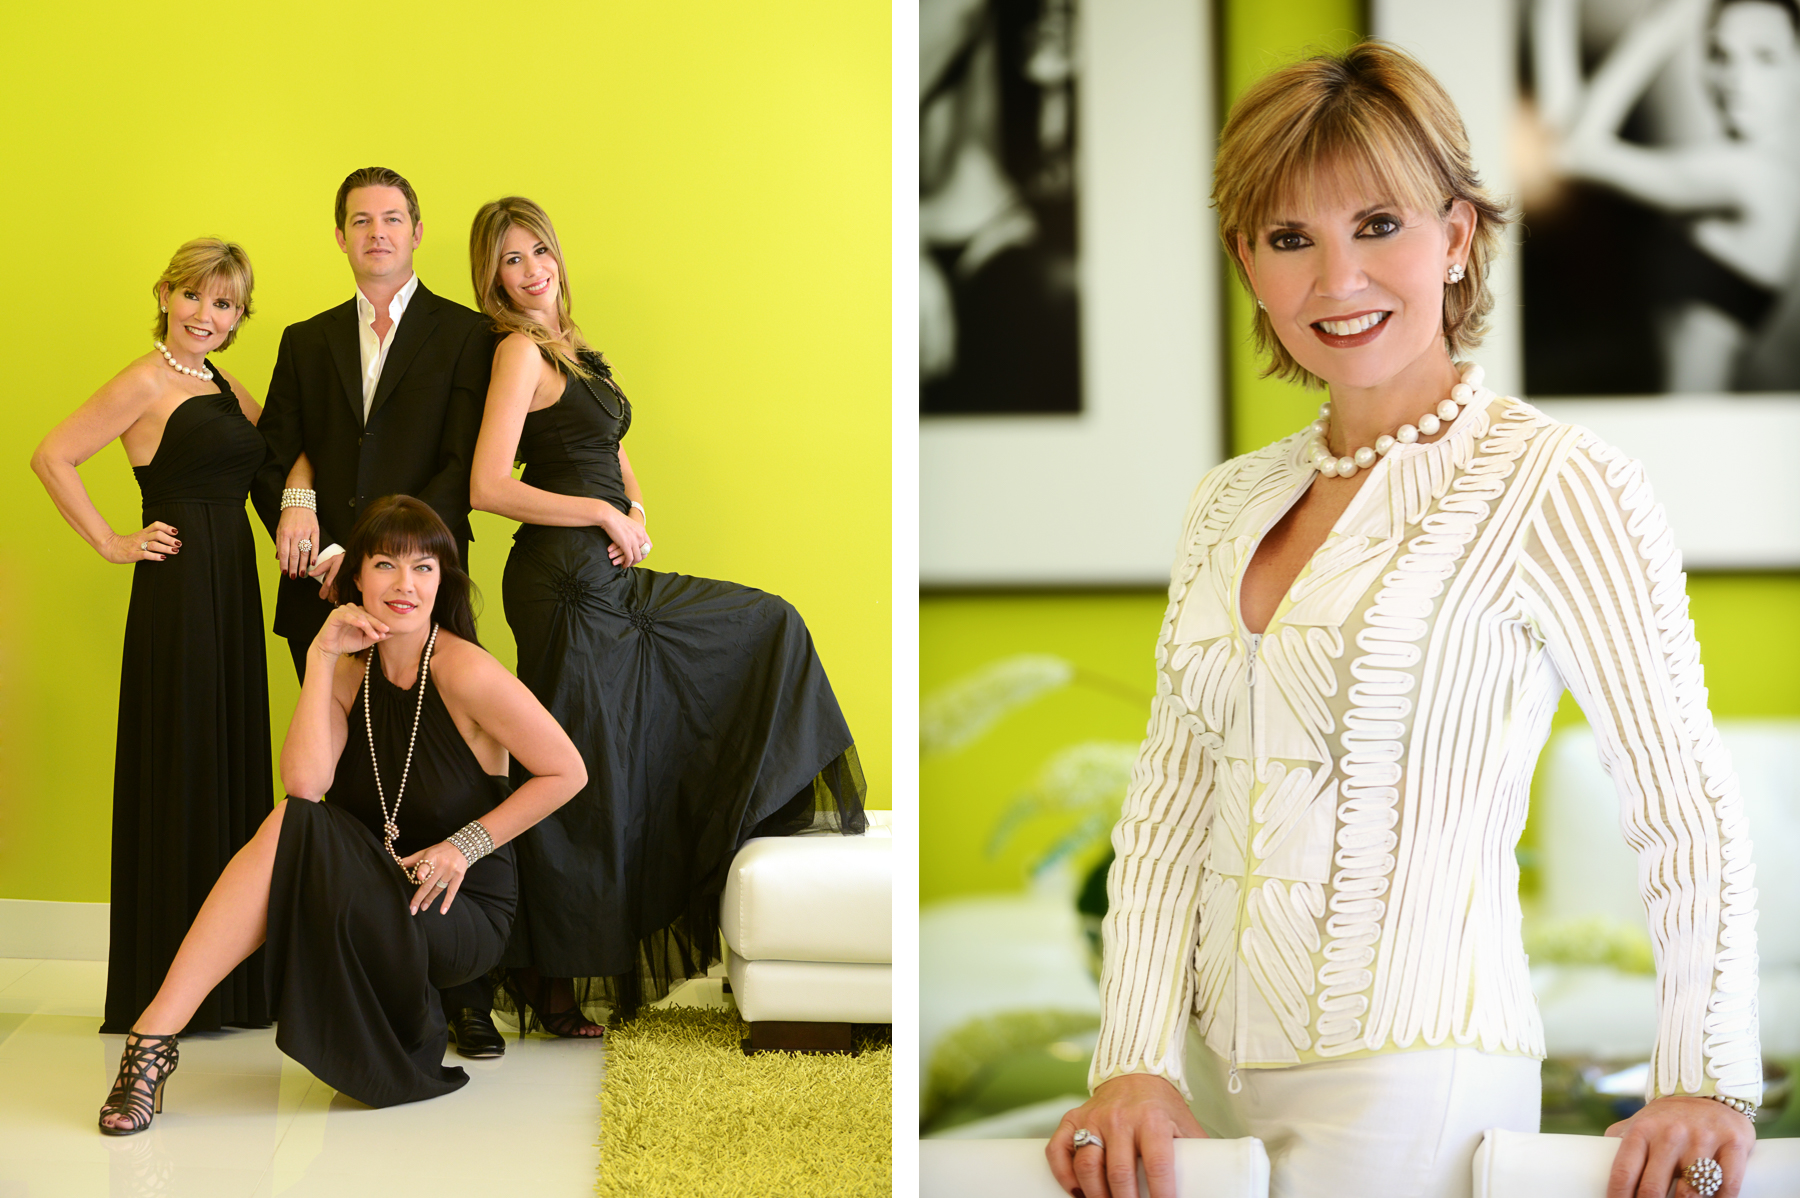 Professional PR and headshots Photography South Florida by Domino Arts Photography